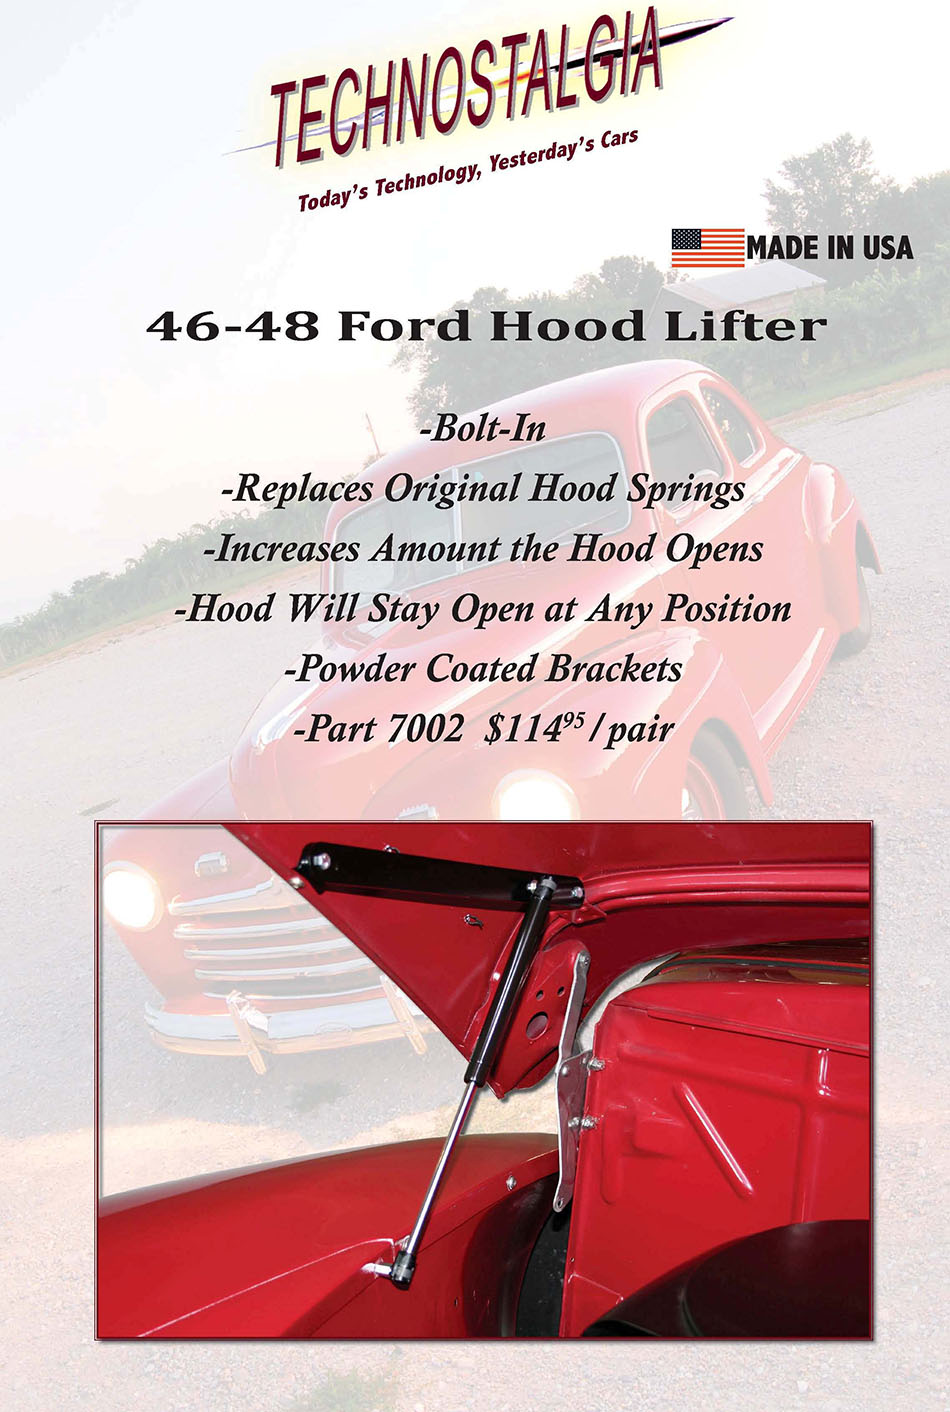 1946-48 Ford Hood Lifter